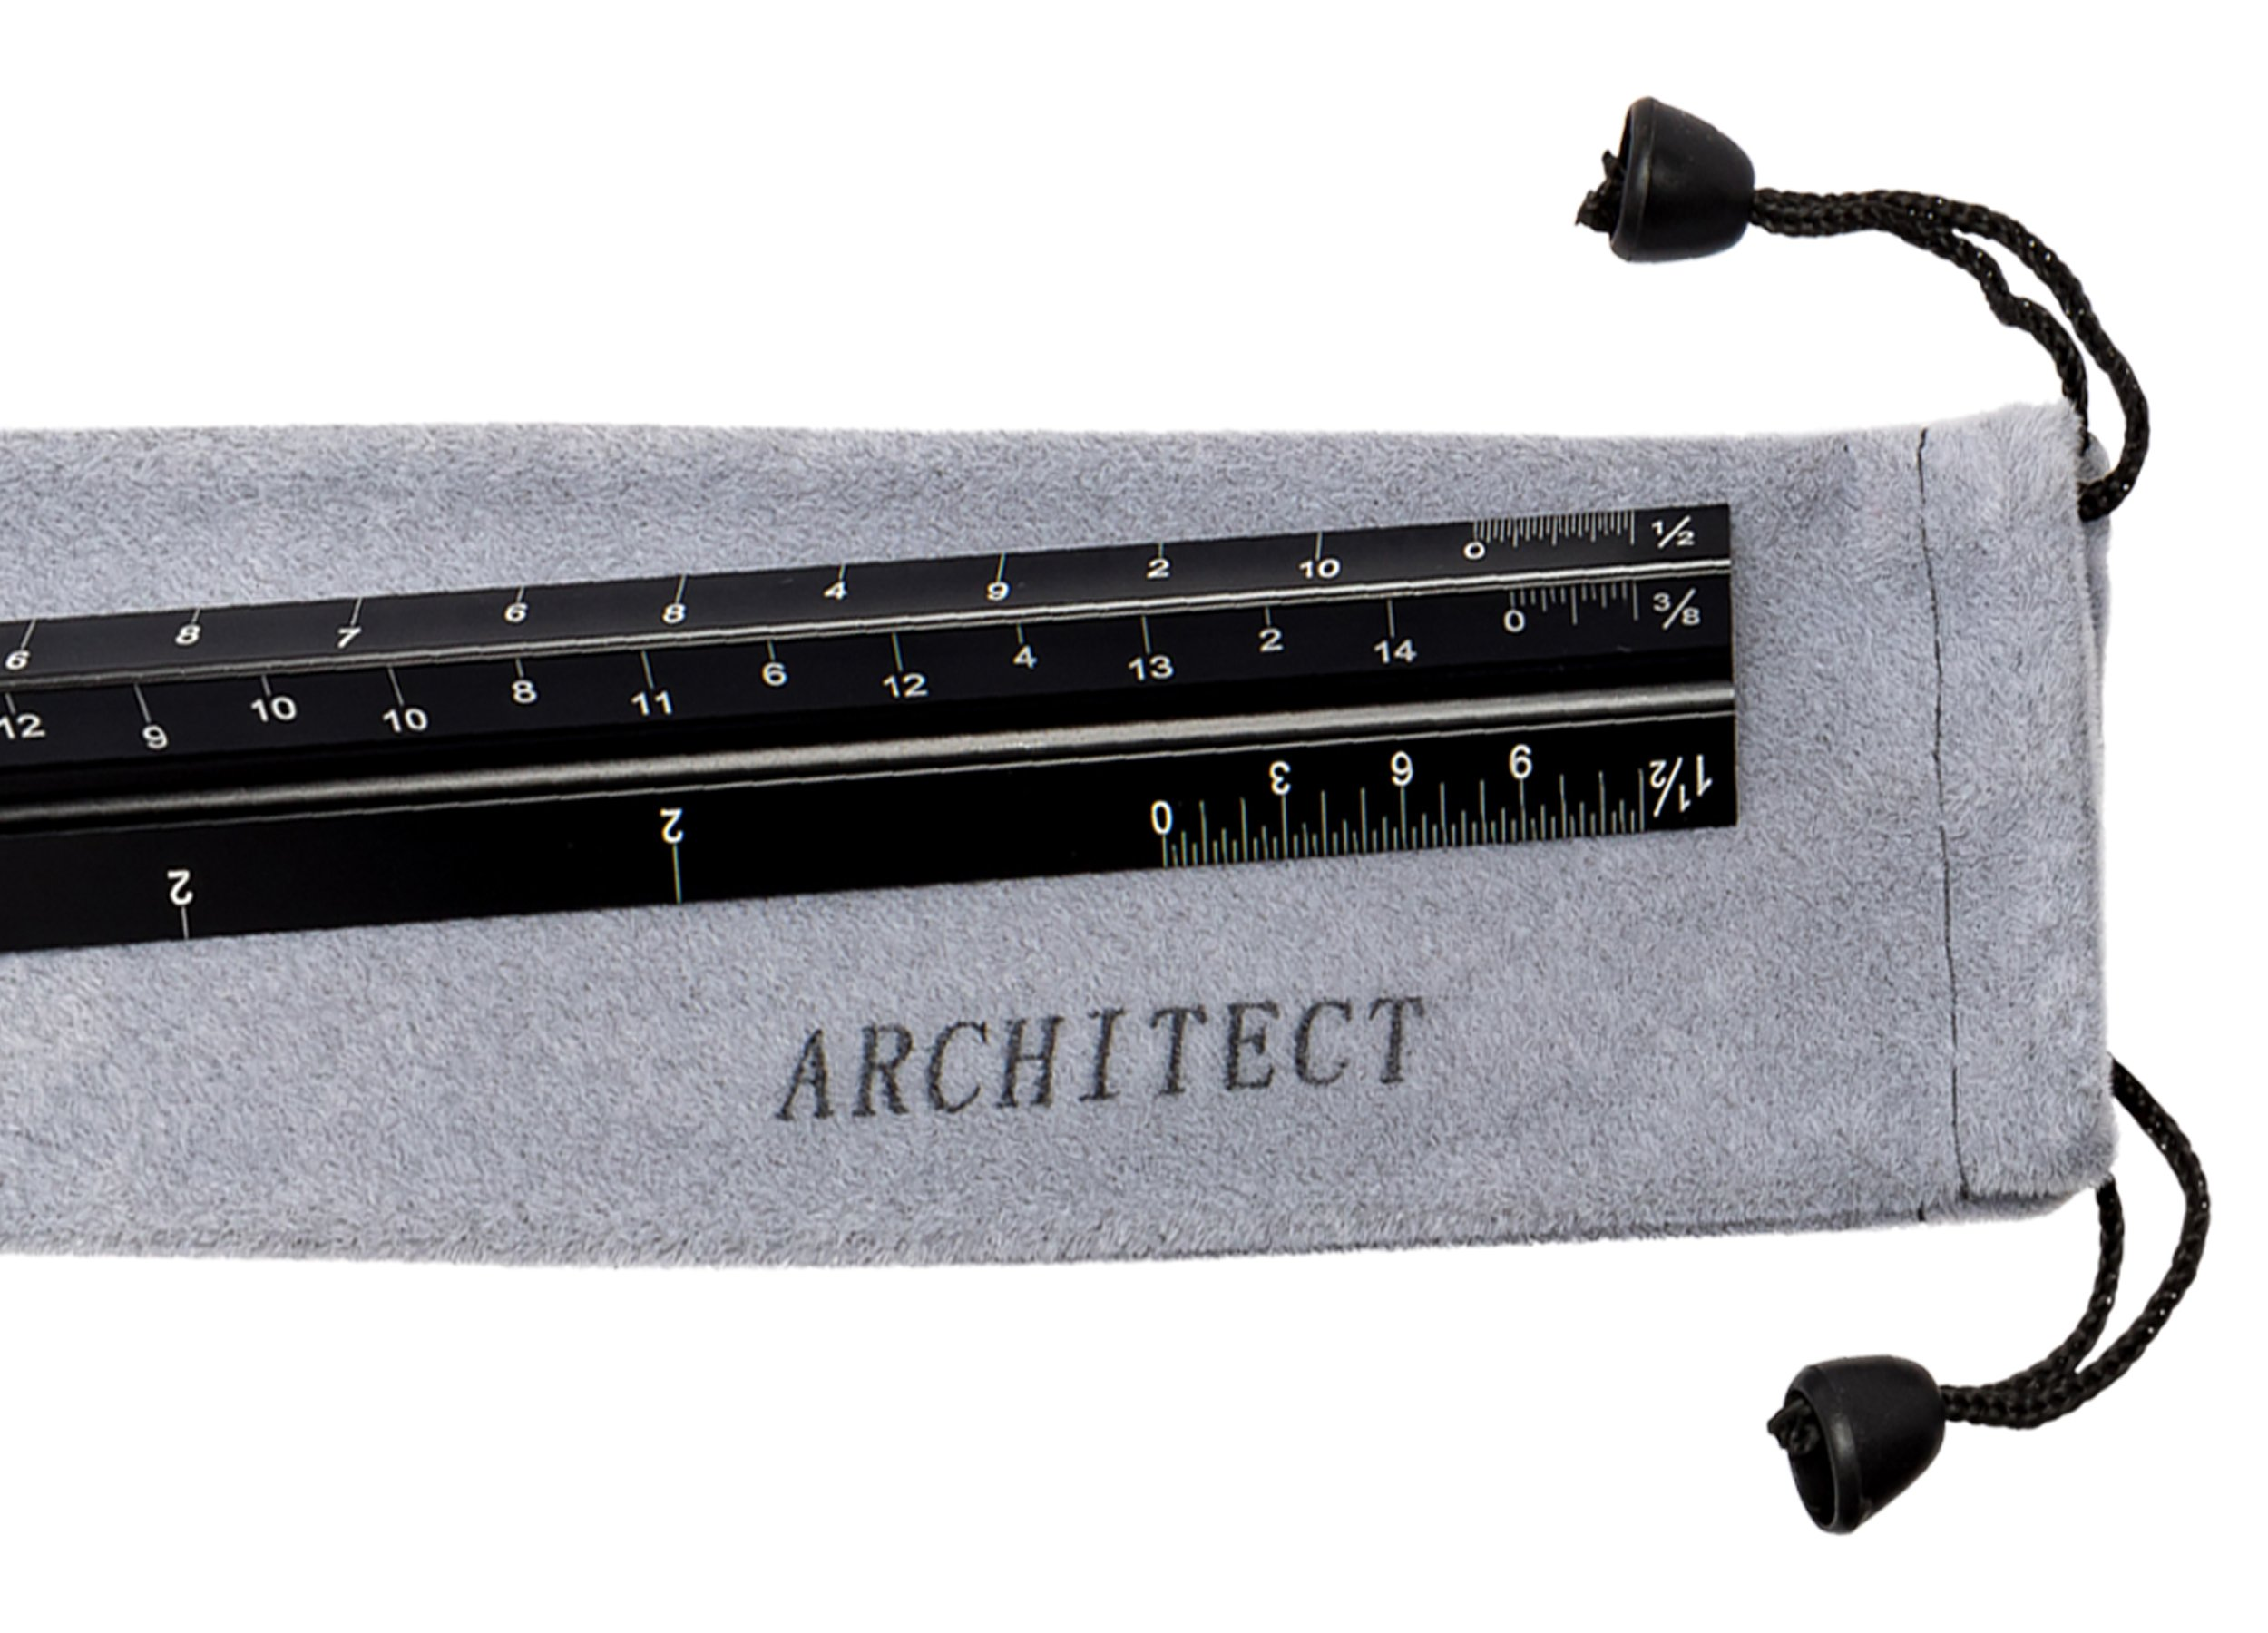 Avant Design 12'' Architectural Scale Ruler with Carrying Pouch (Imperial) - Solid Aluminum Core, Anodized Black with Laser Etched Markings - Ideal for Architects, Students, Draftsman, and Engineers